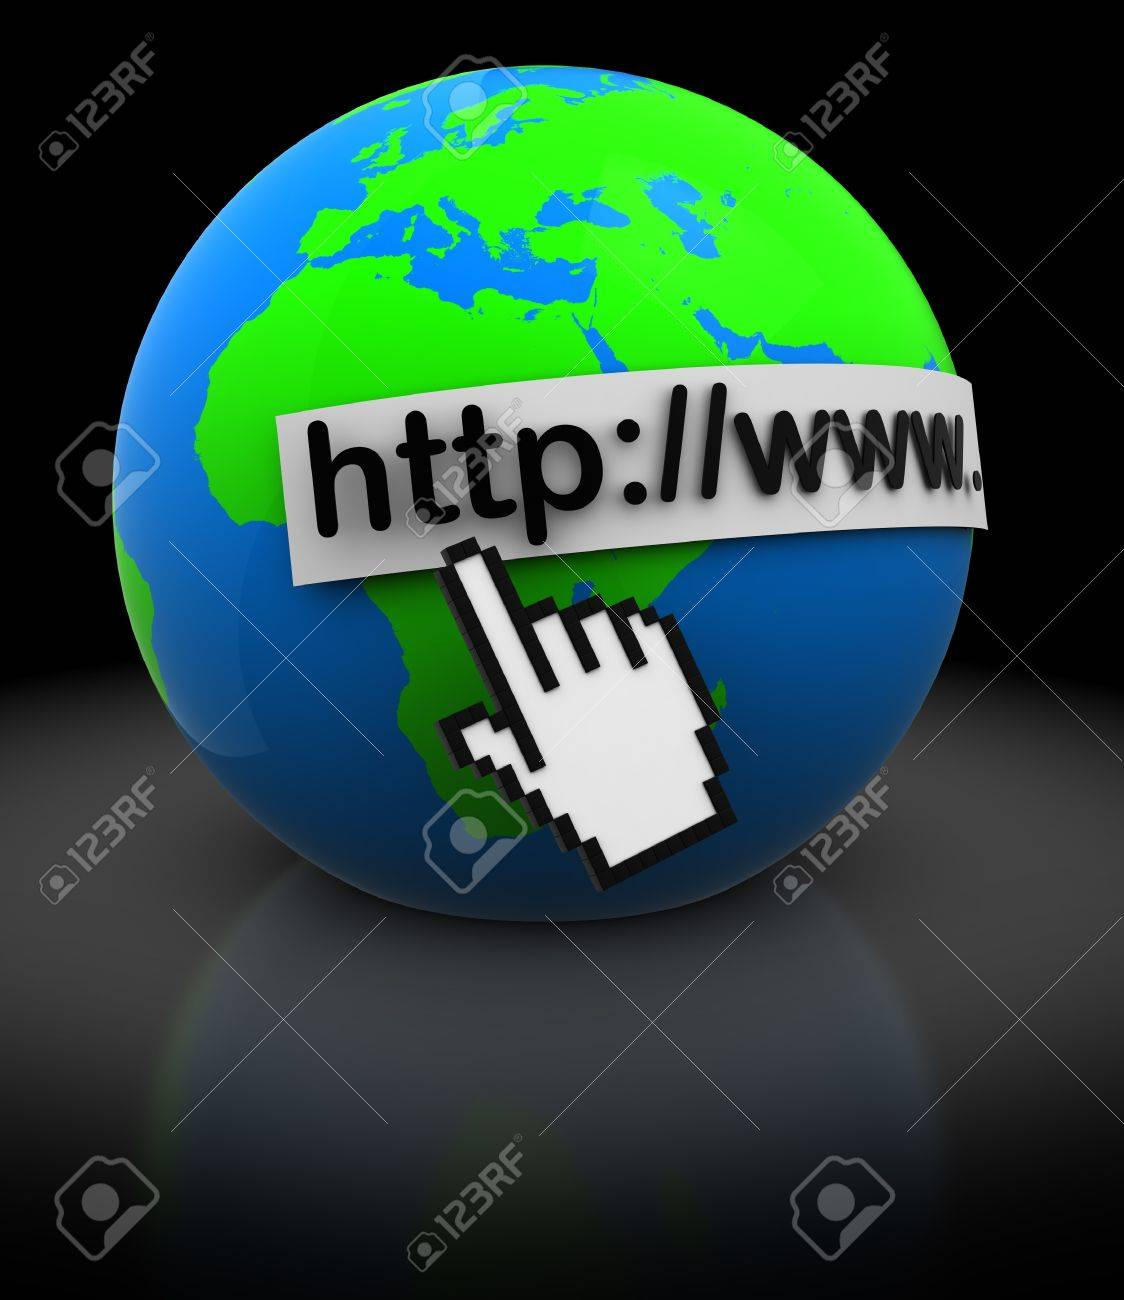 abstract 3d illustration of earth globe with mouse cursor, internet concept Stock Photo - 10490006